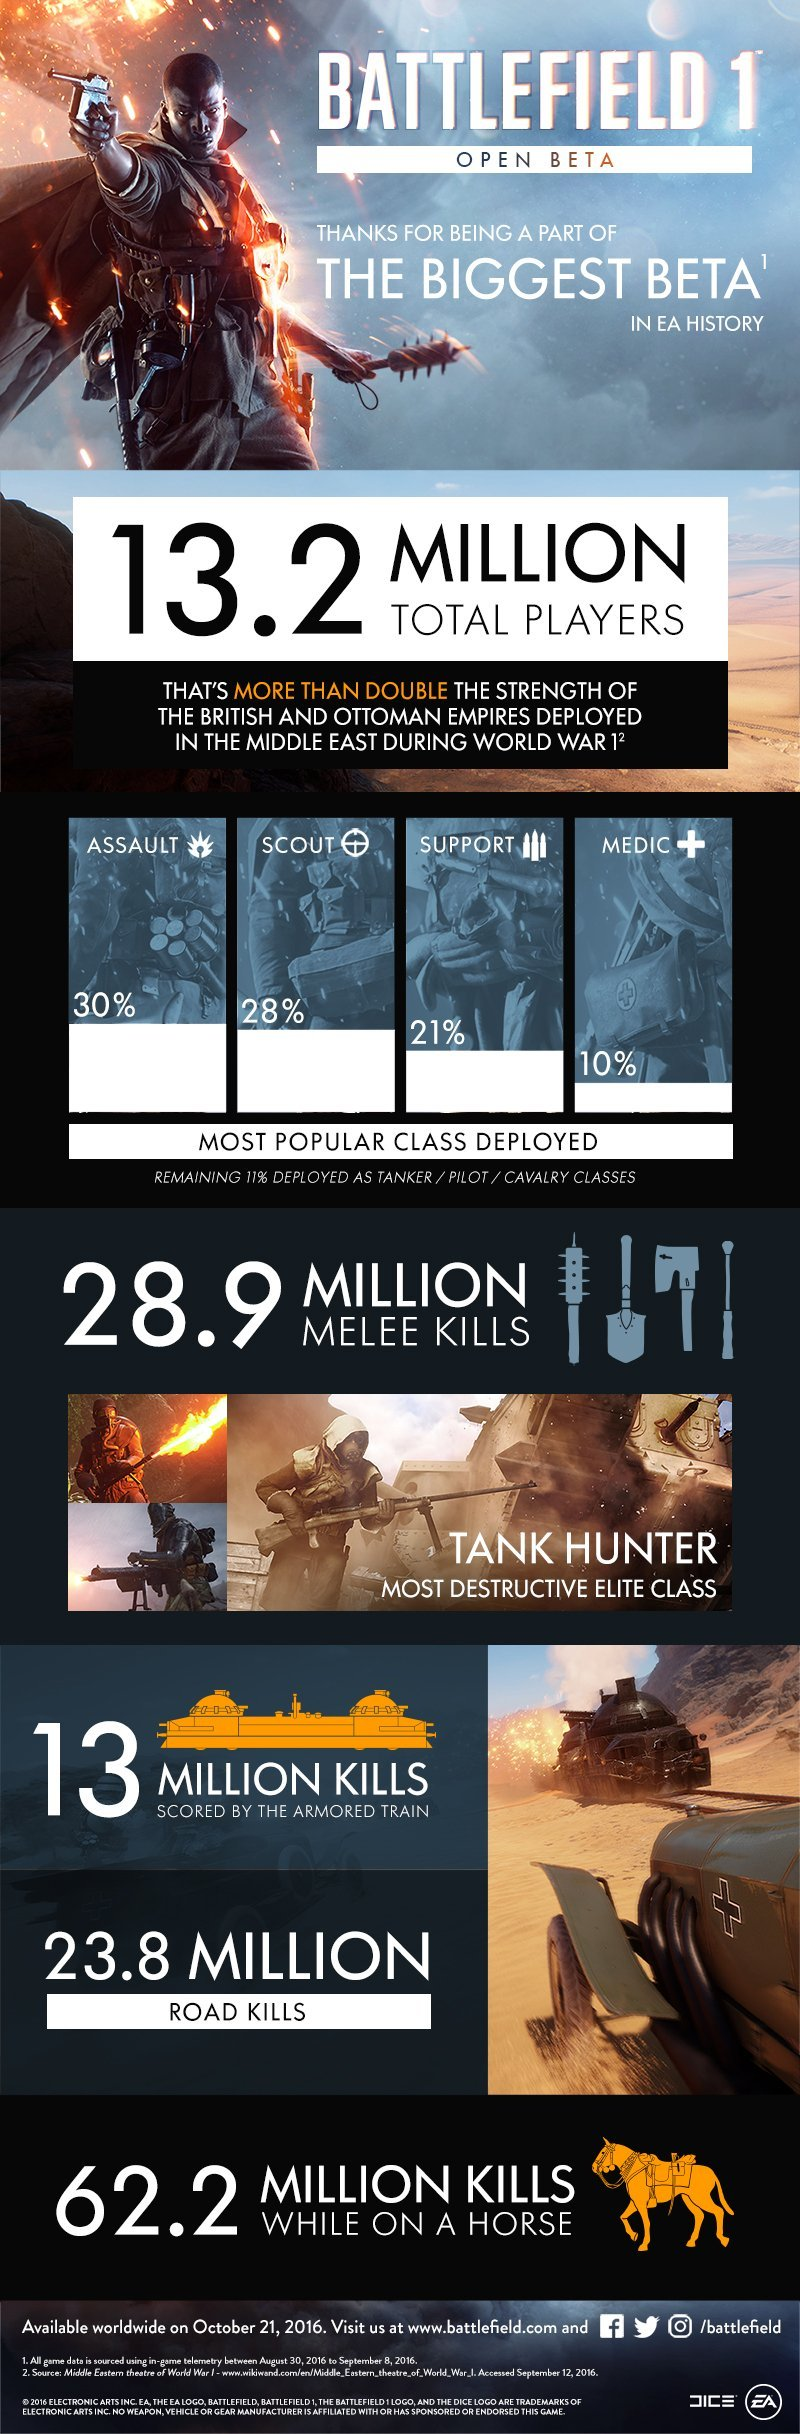 bf1-betainfographic